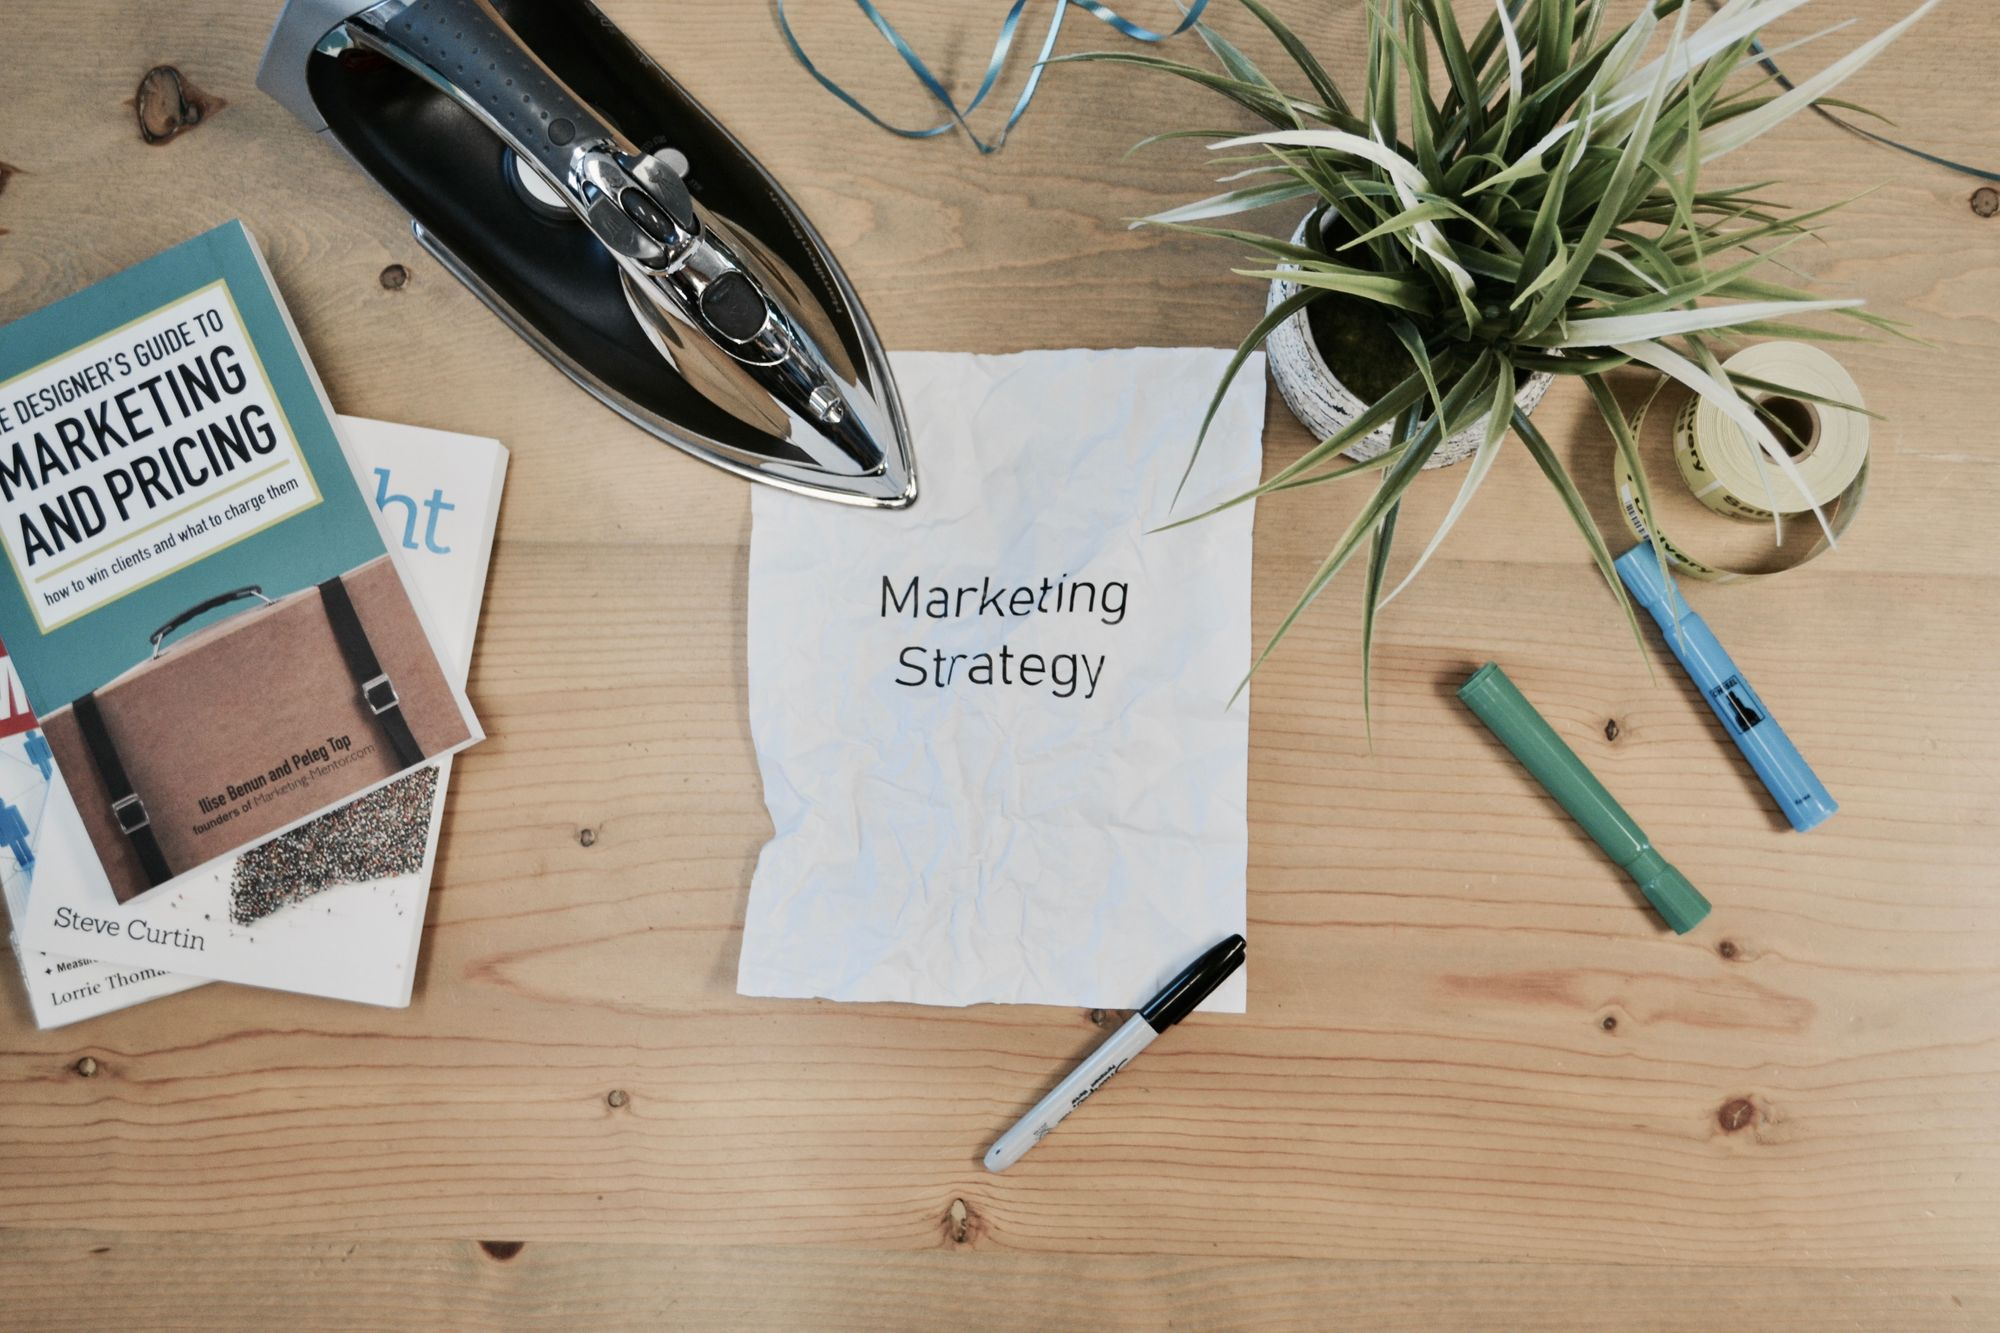 marketing-strategy-with-marketing-book